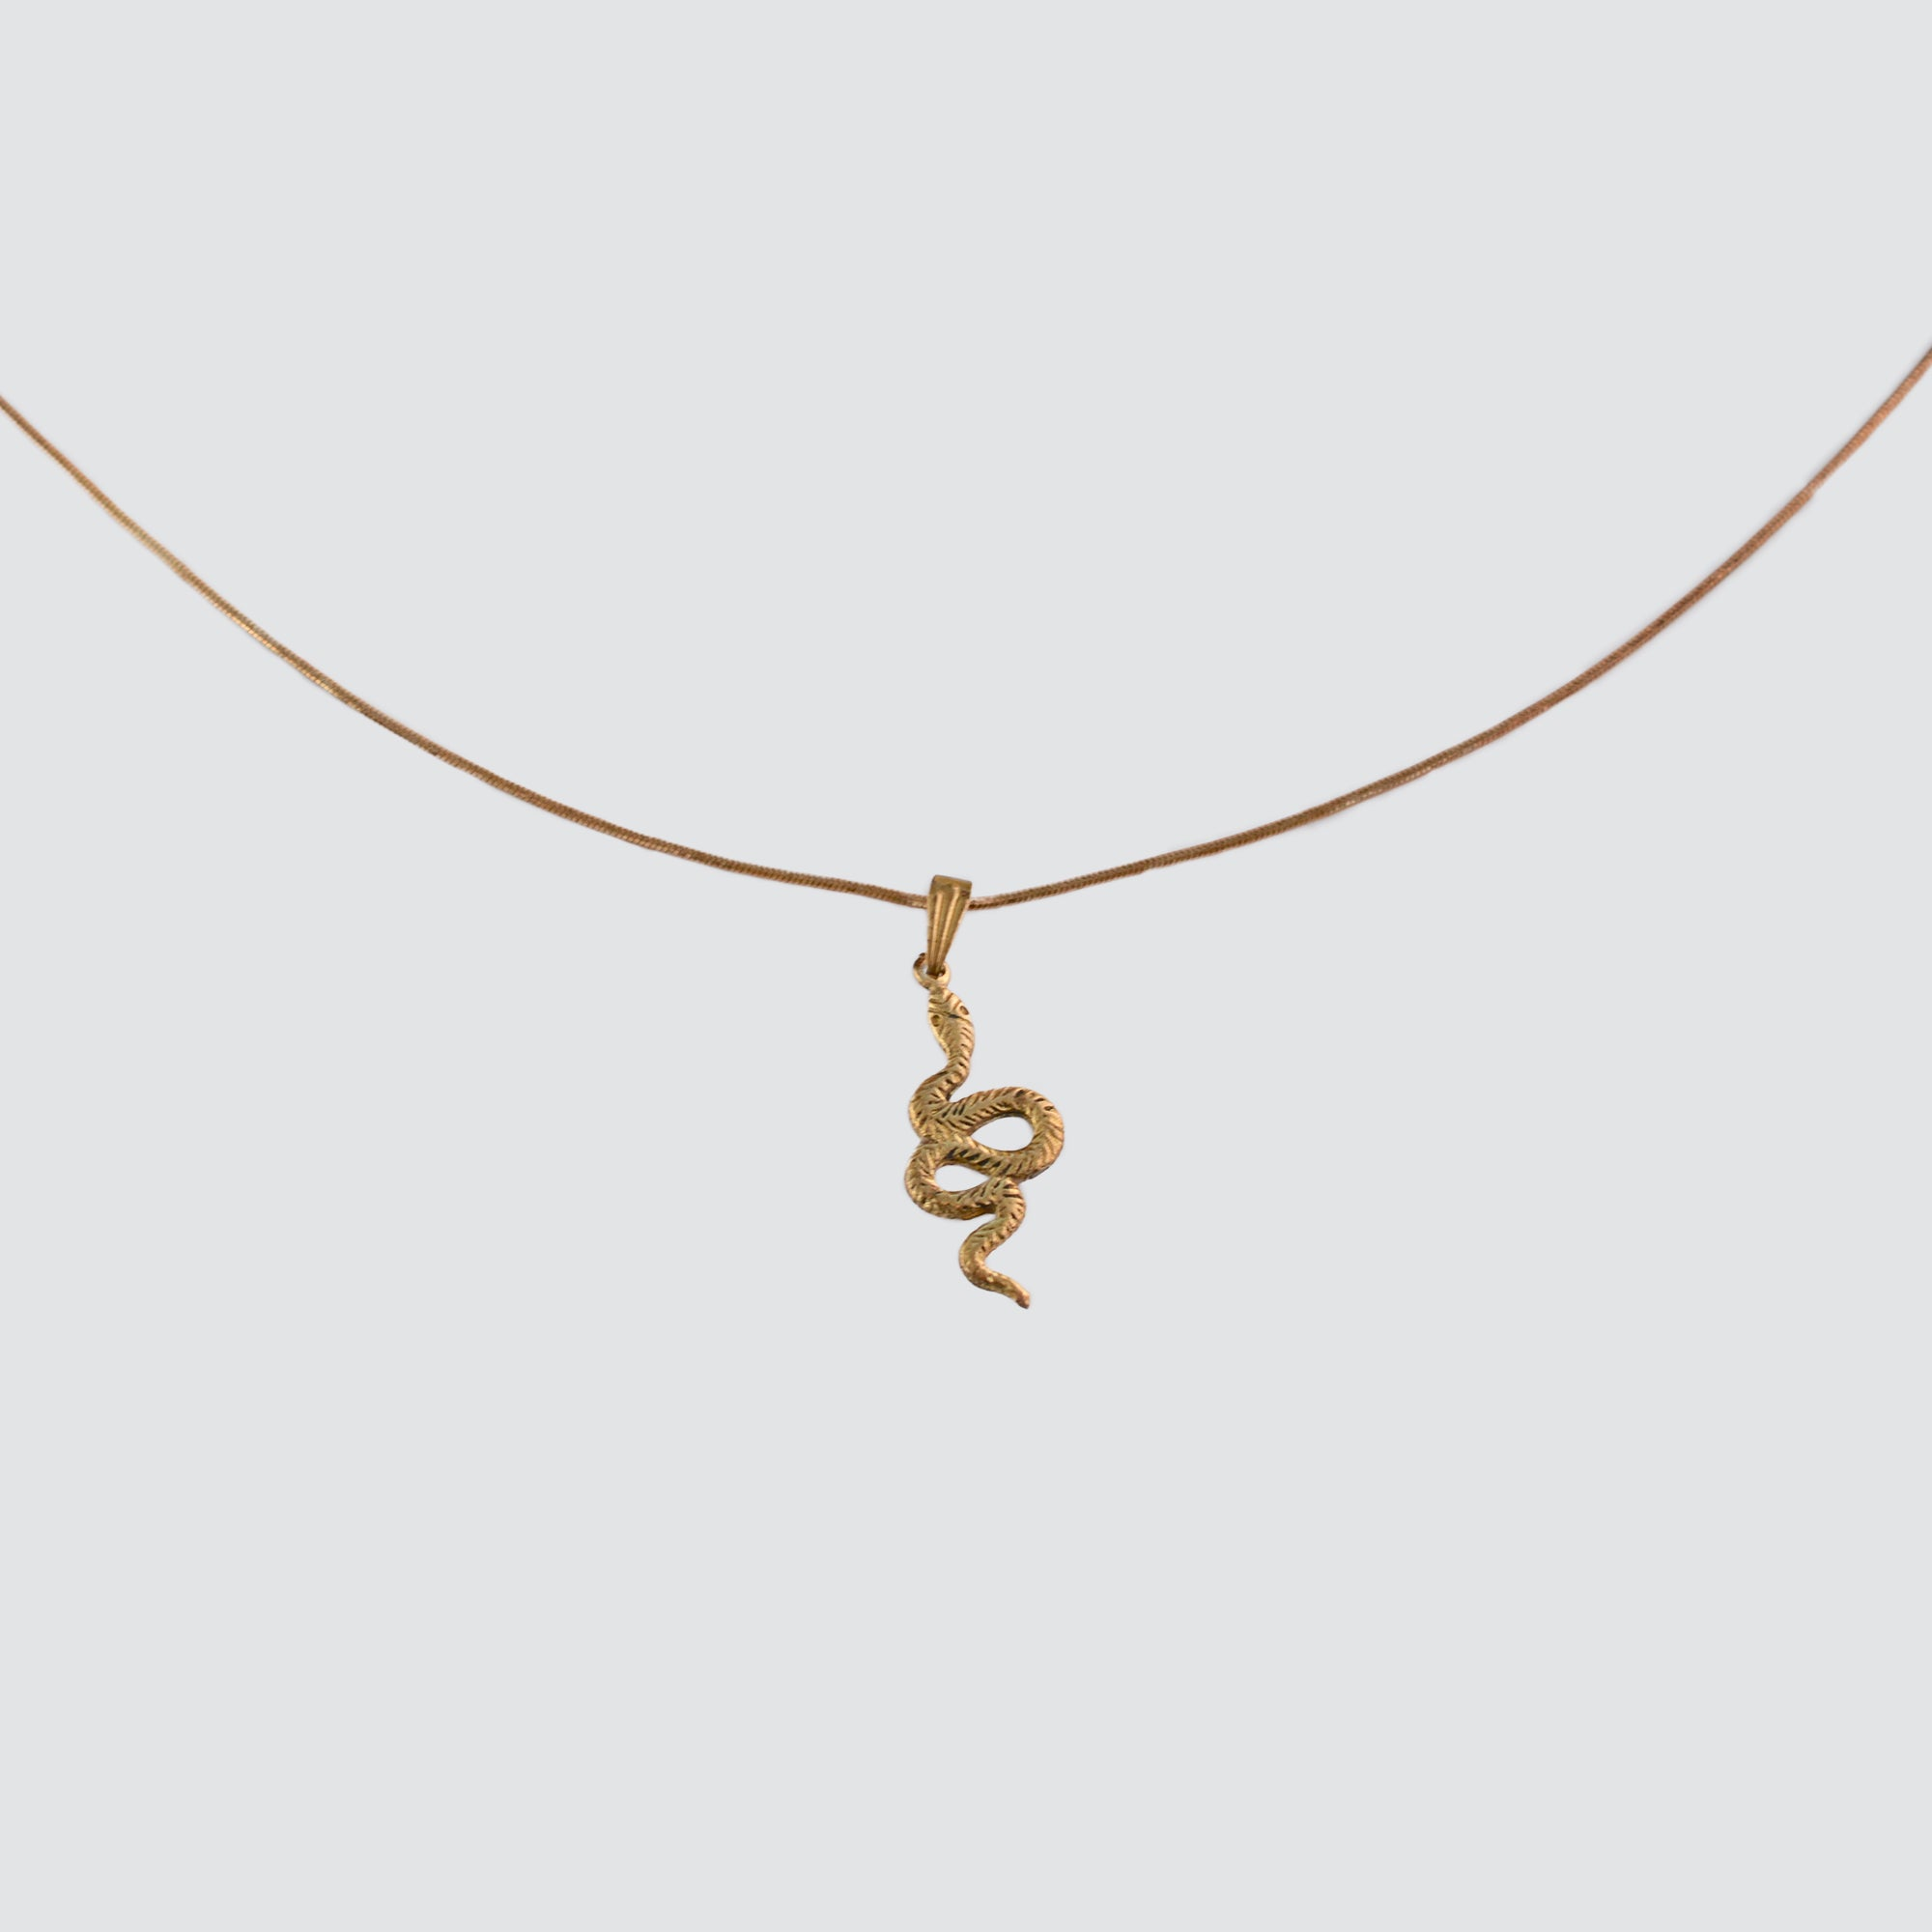 GREAT SUCCESS ADJUSTABLE LENGTH  NECKLACE // SERPENT